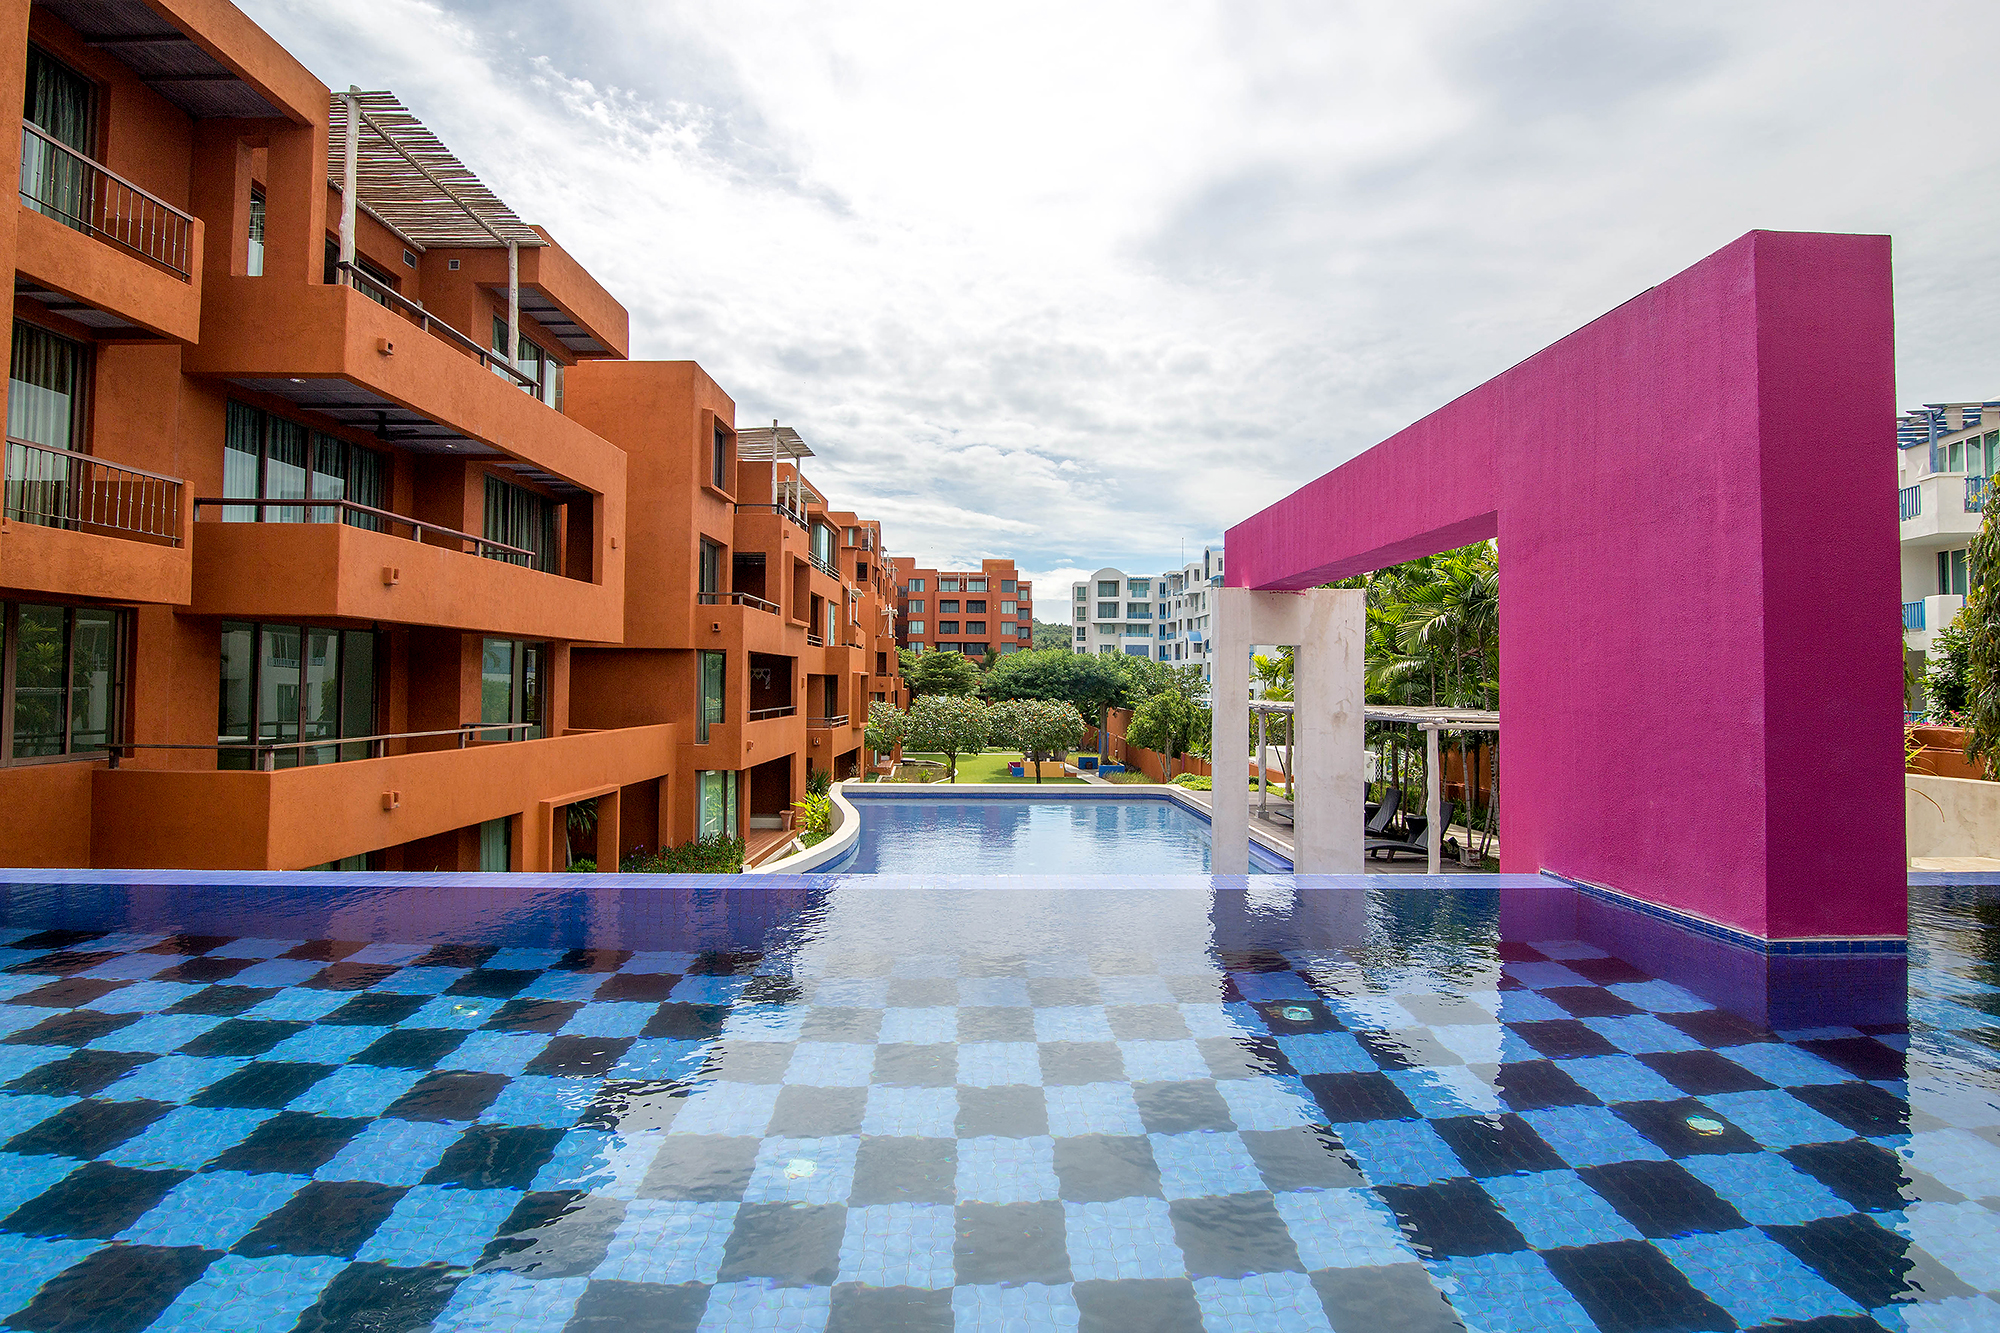 2 Bedrooms unit at Lastortugas for Rent